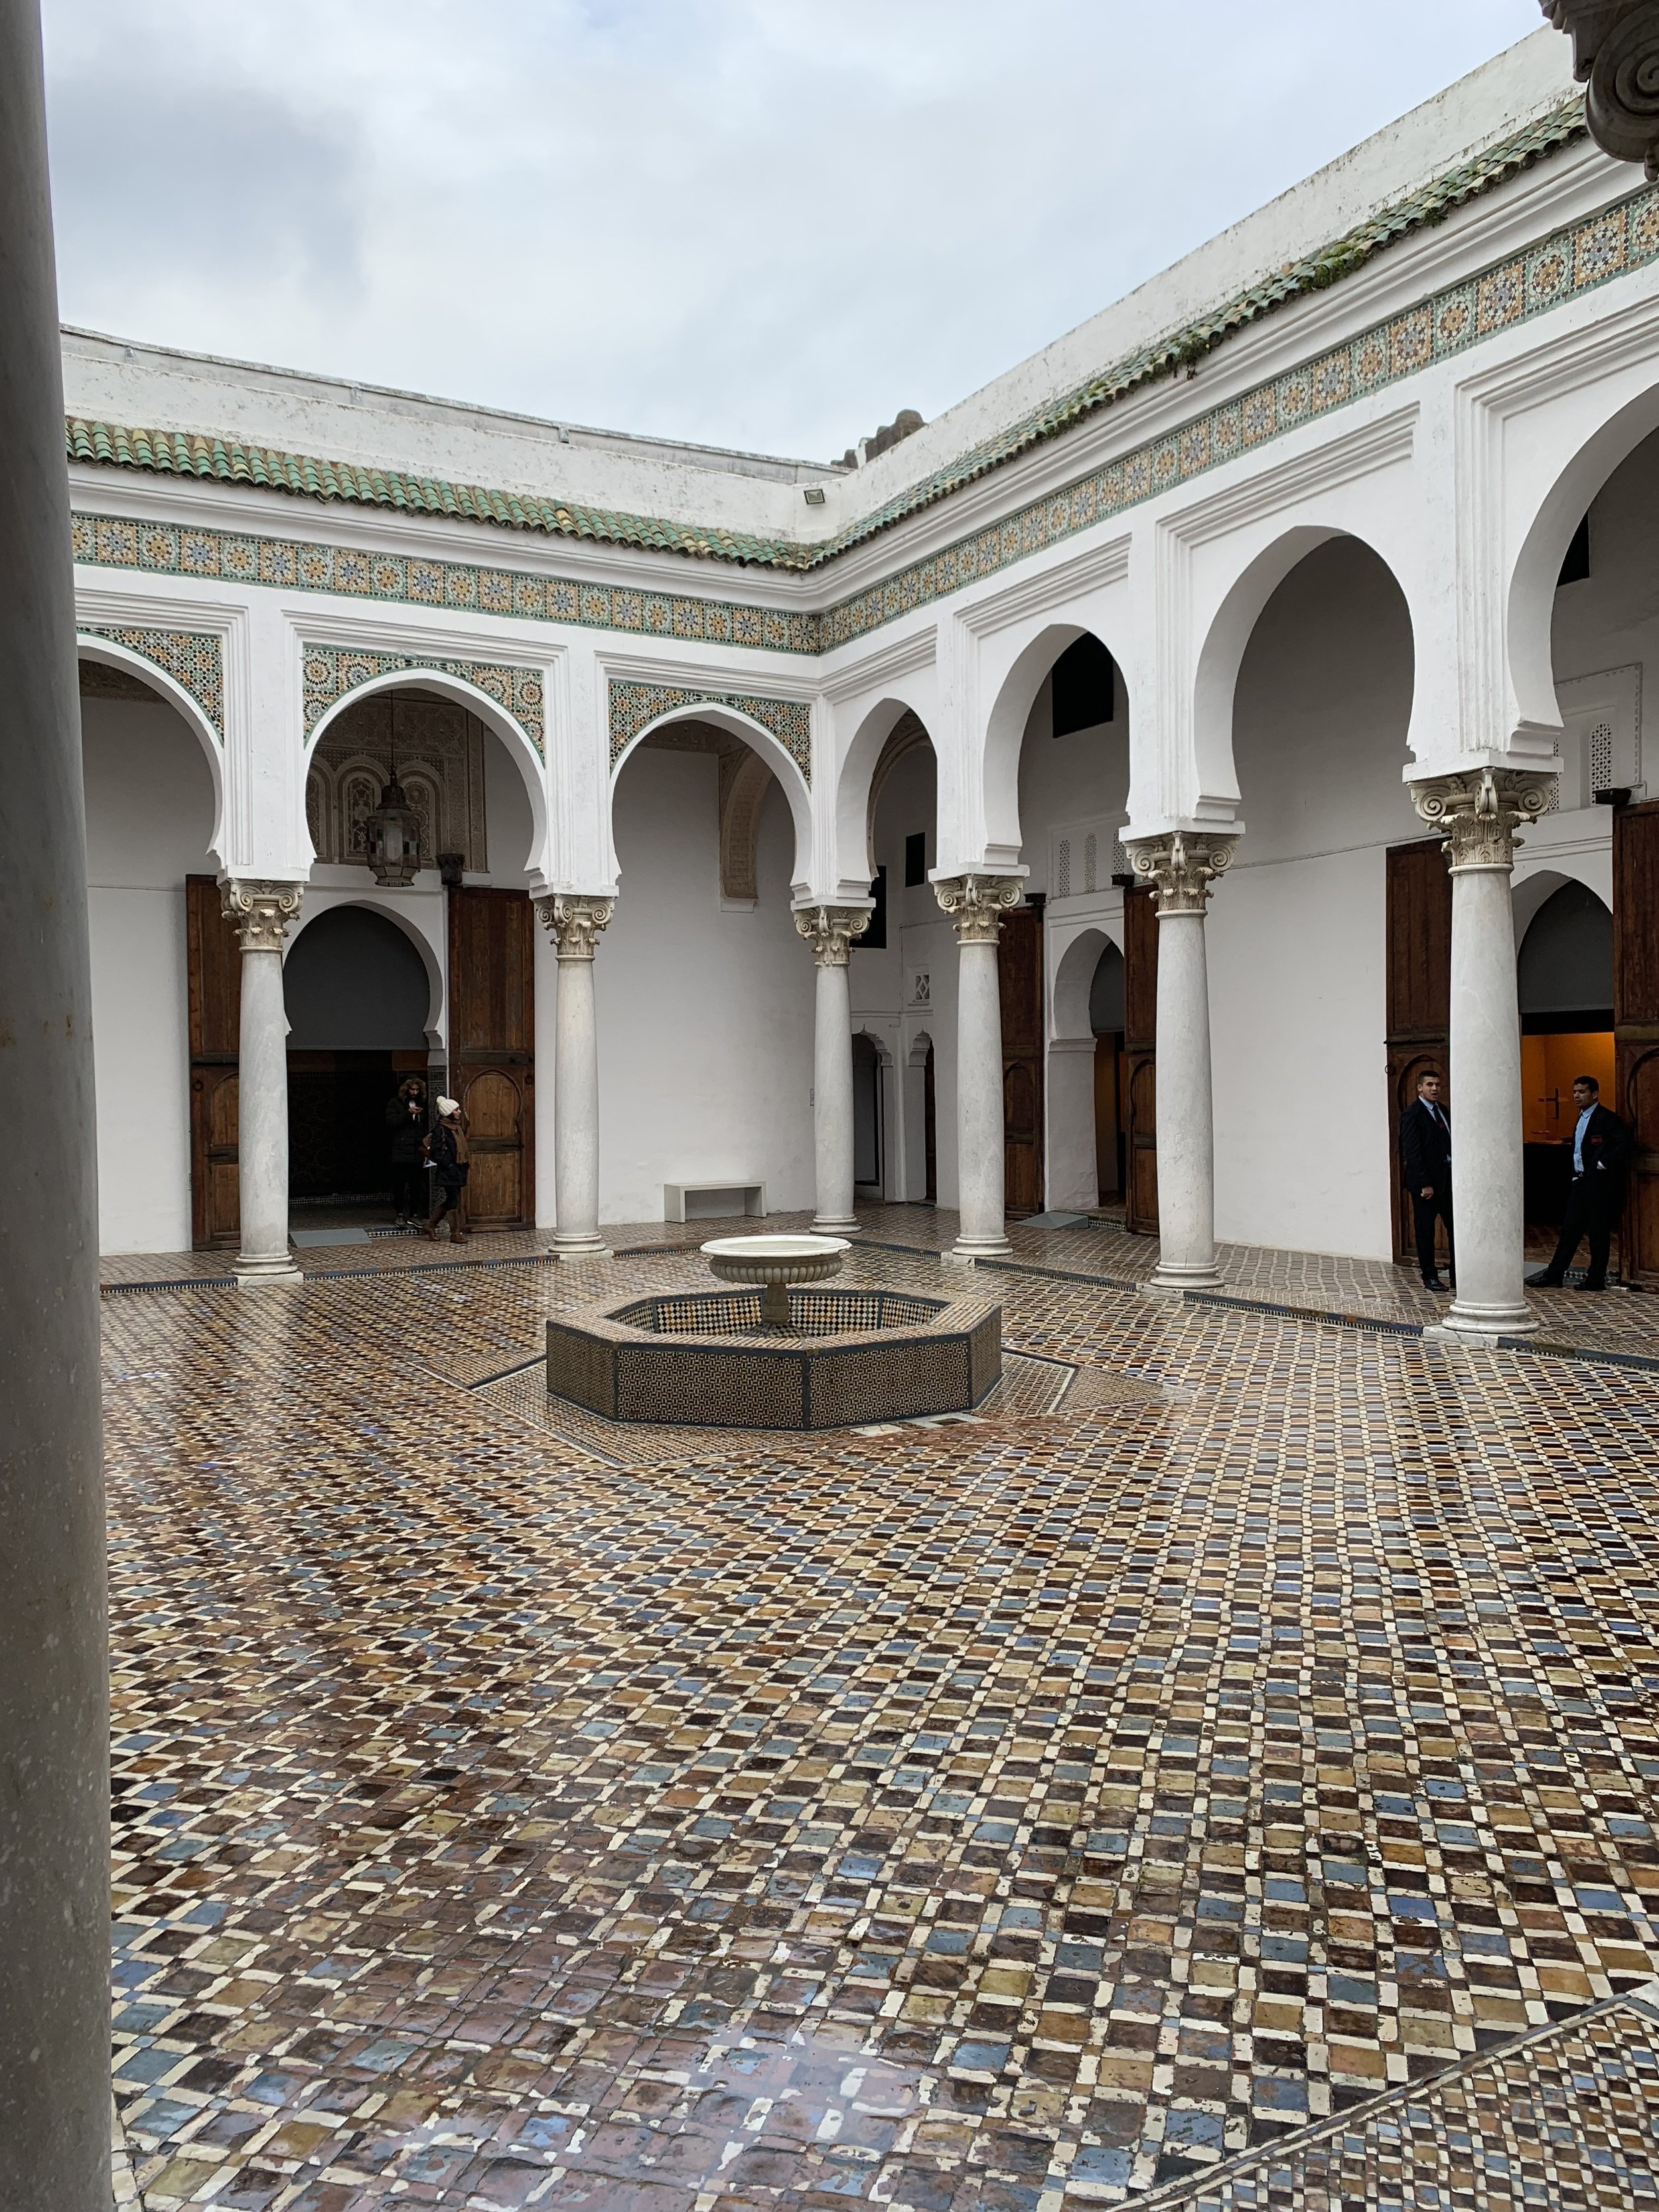 The Kasbah Museum of Tangier features beautiful courtyards constructed with incredible detail and craftsmanship. Photo Credit: M. Aboko-Cole, Spring 2019.